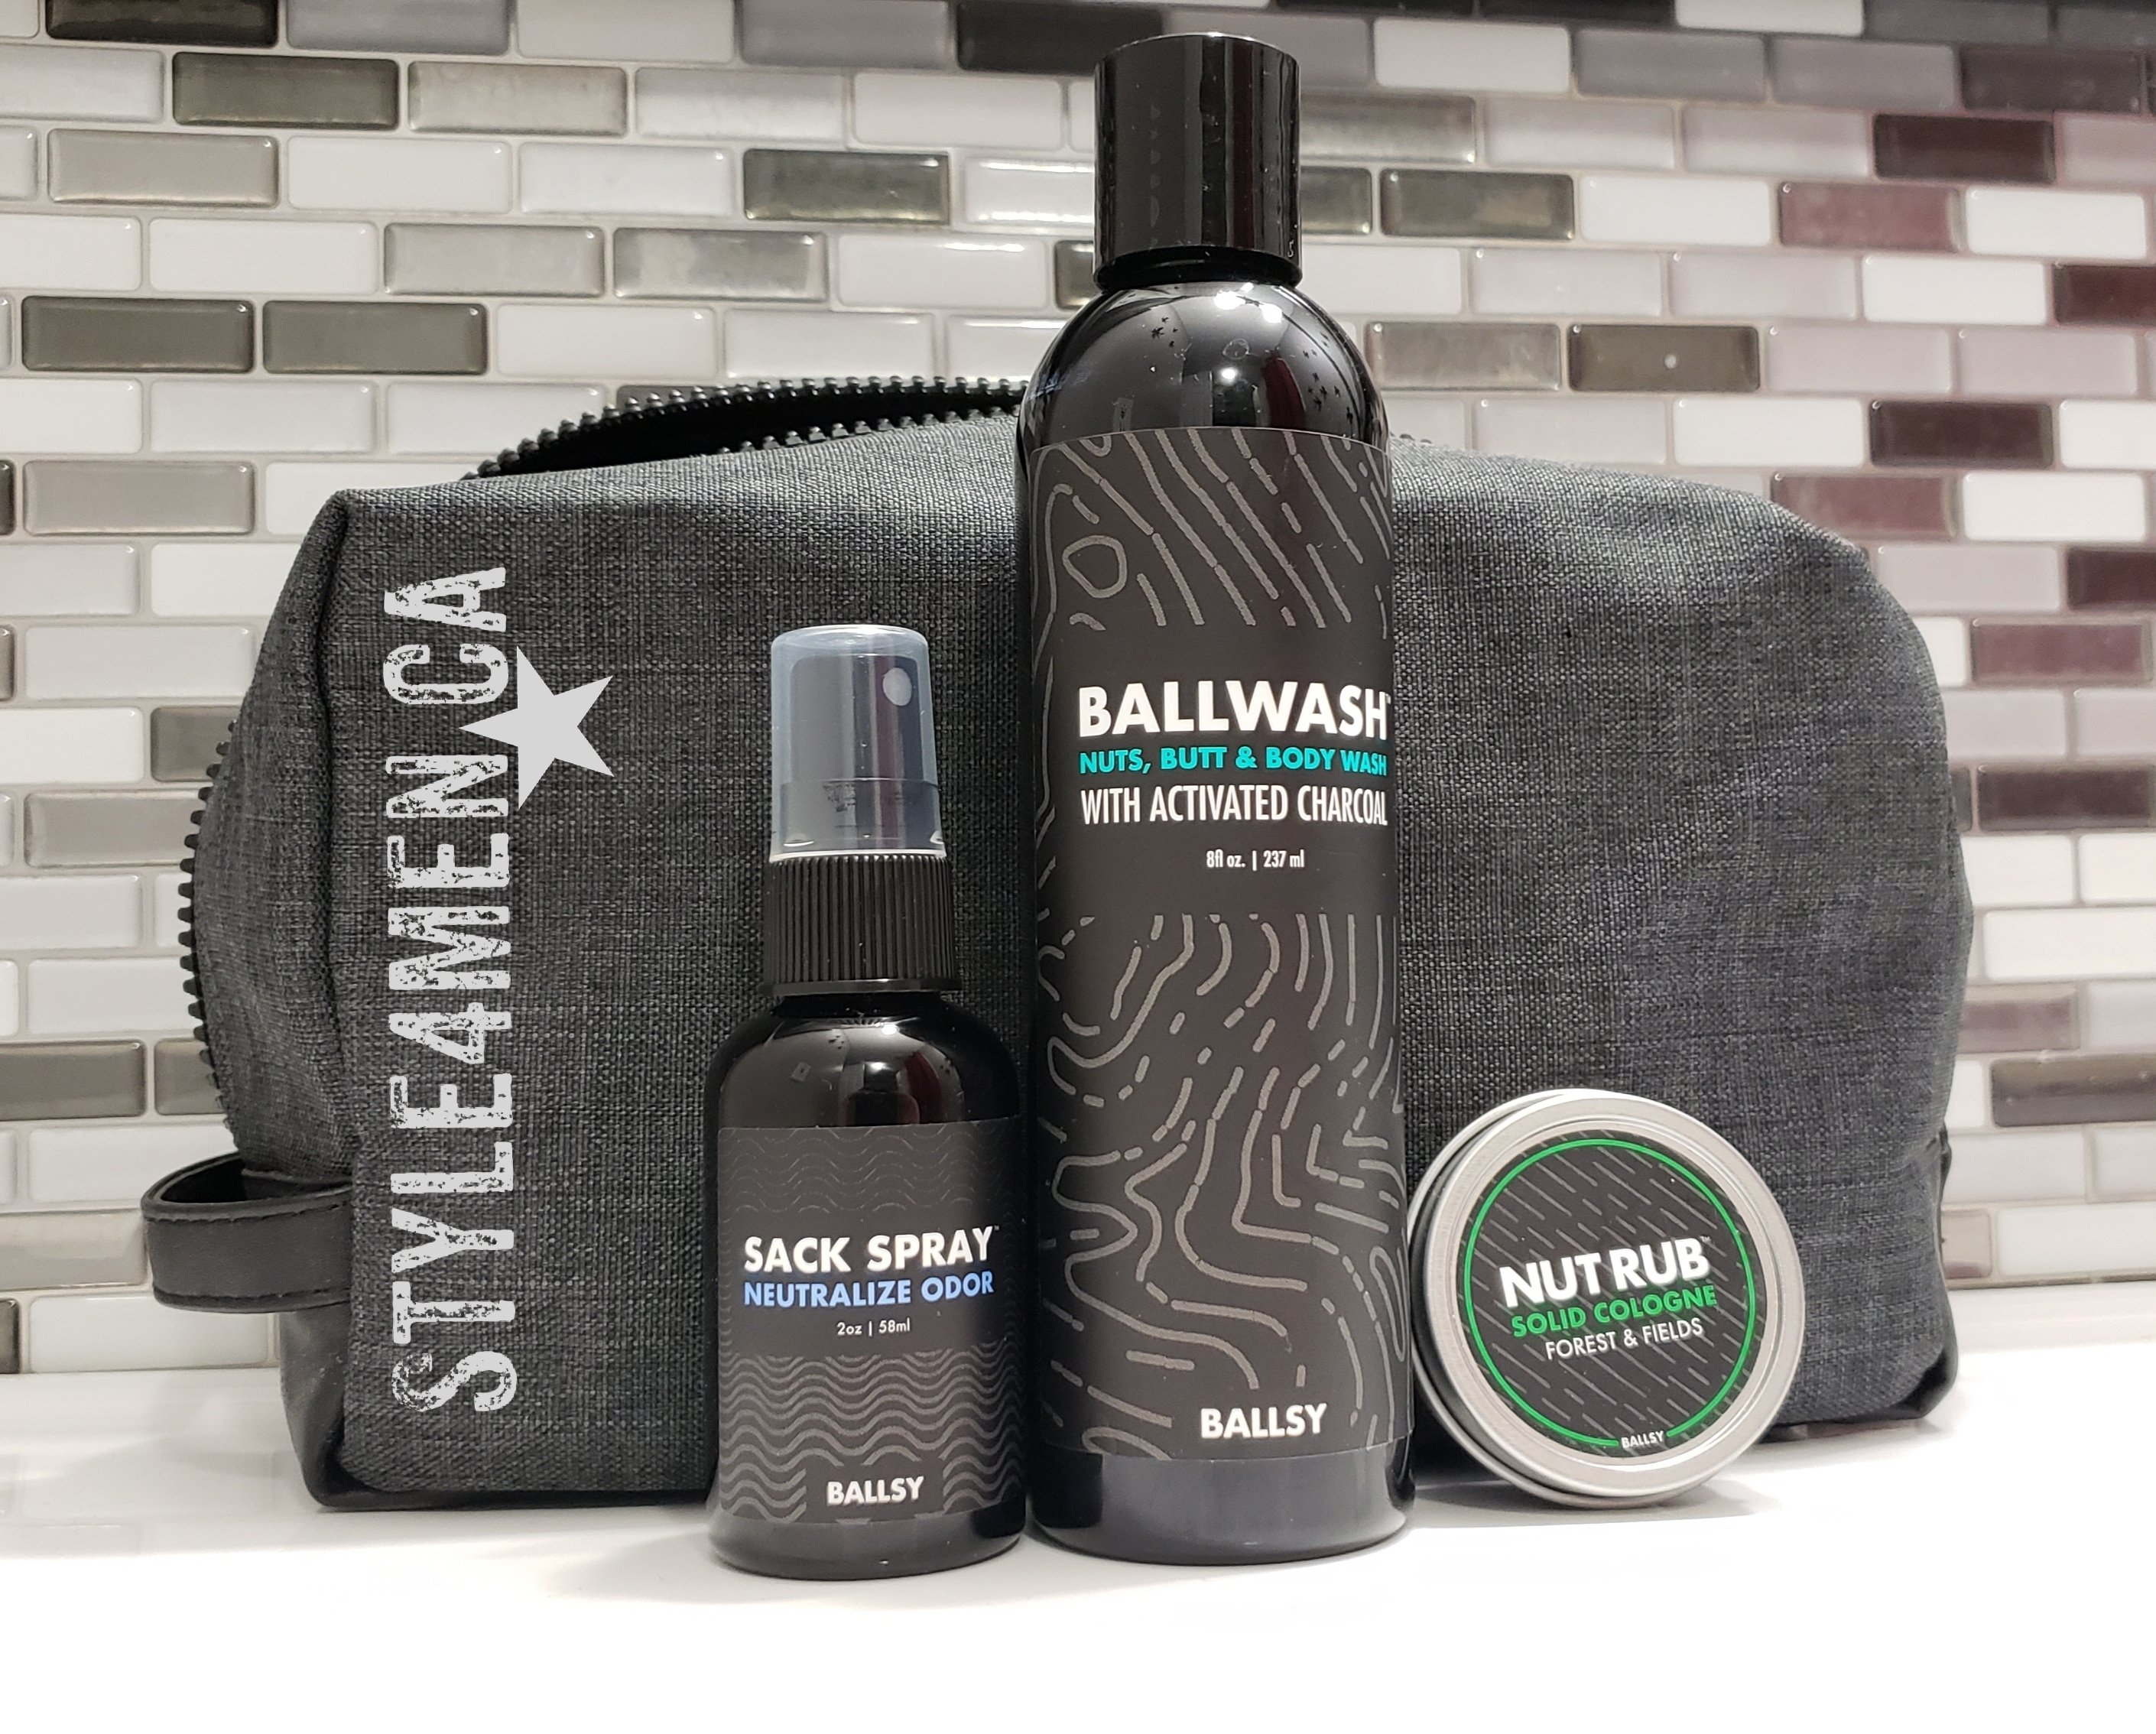 The Sack Pack by BALLSY – Something for your boys